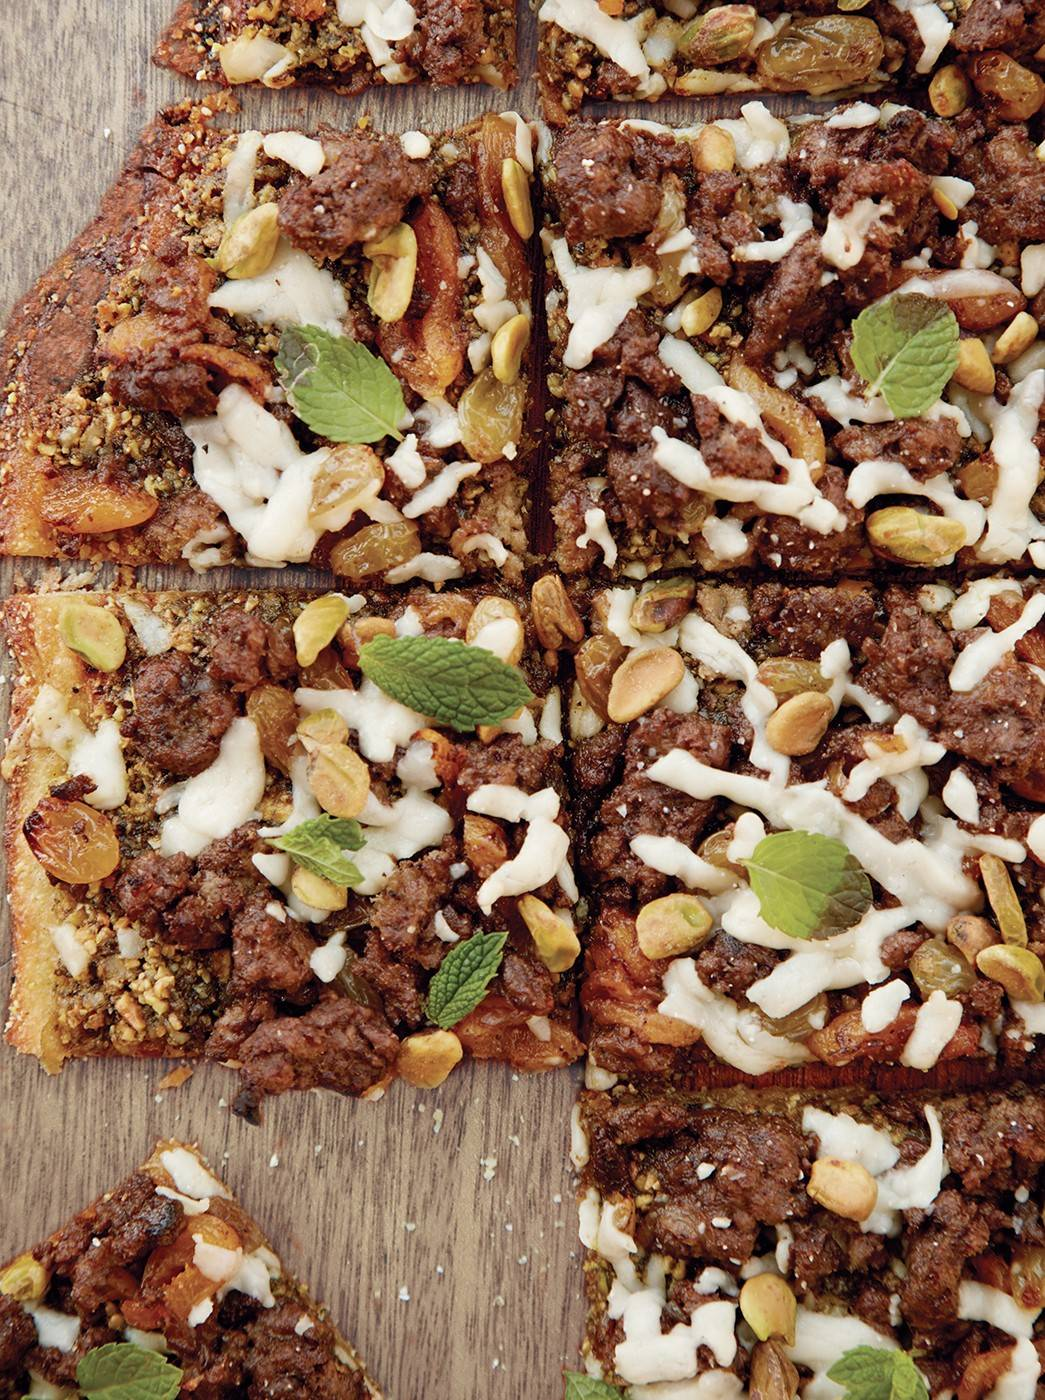 The flavors of lamb tagine come outside on this grilled pizza.